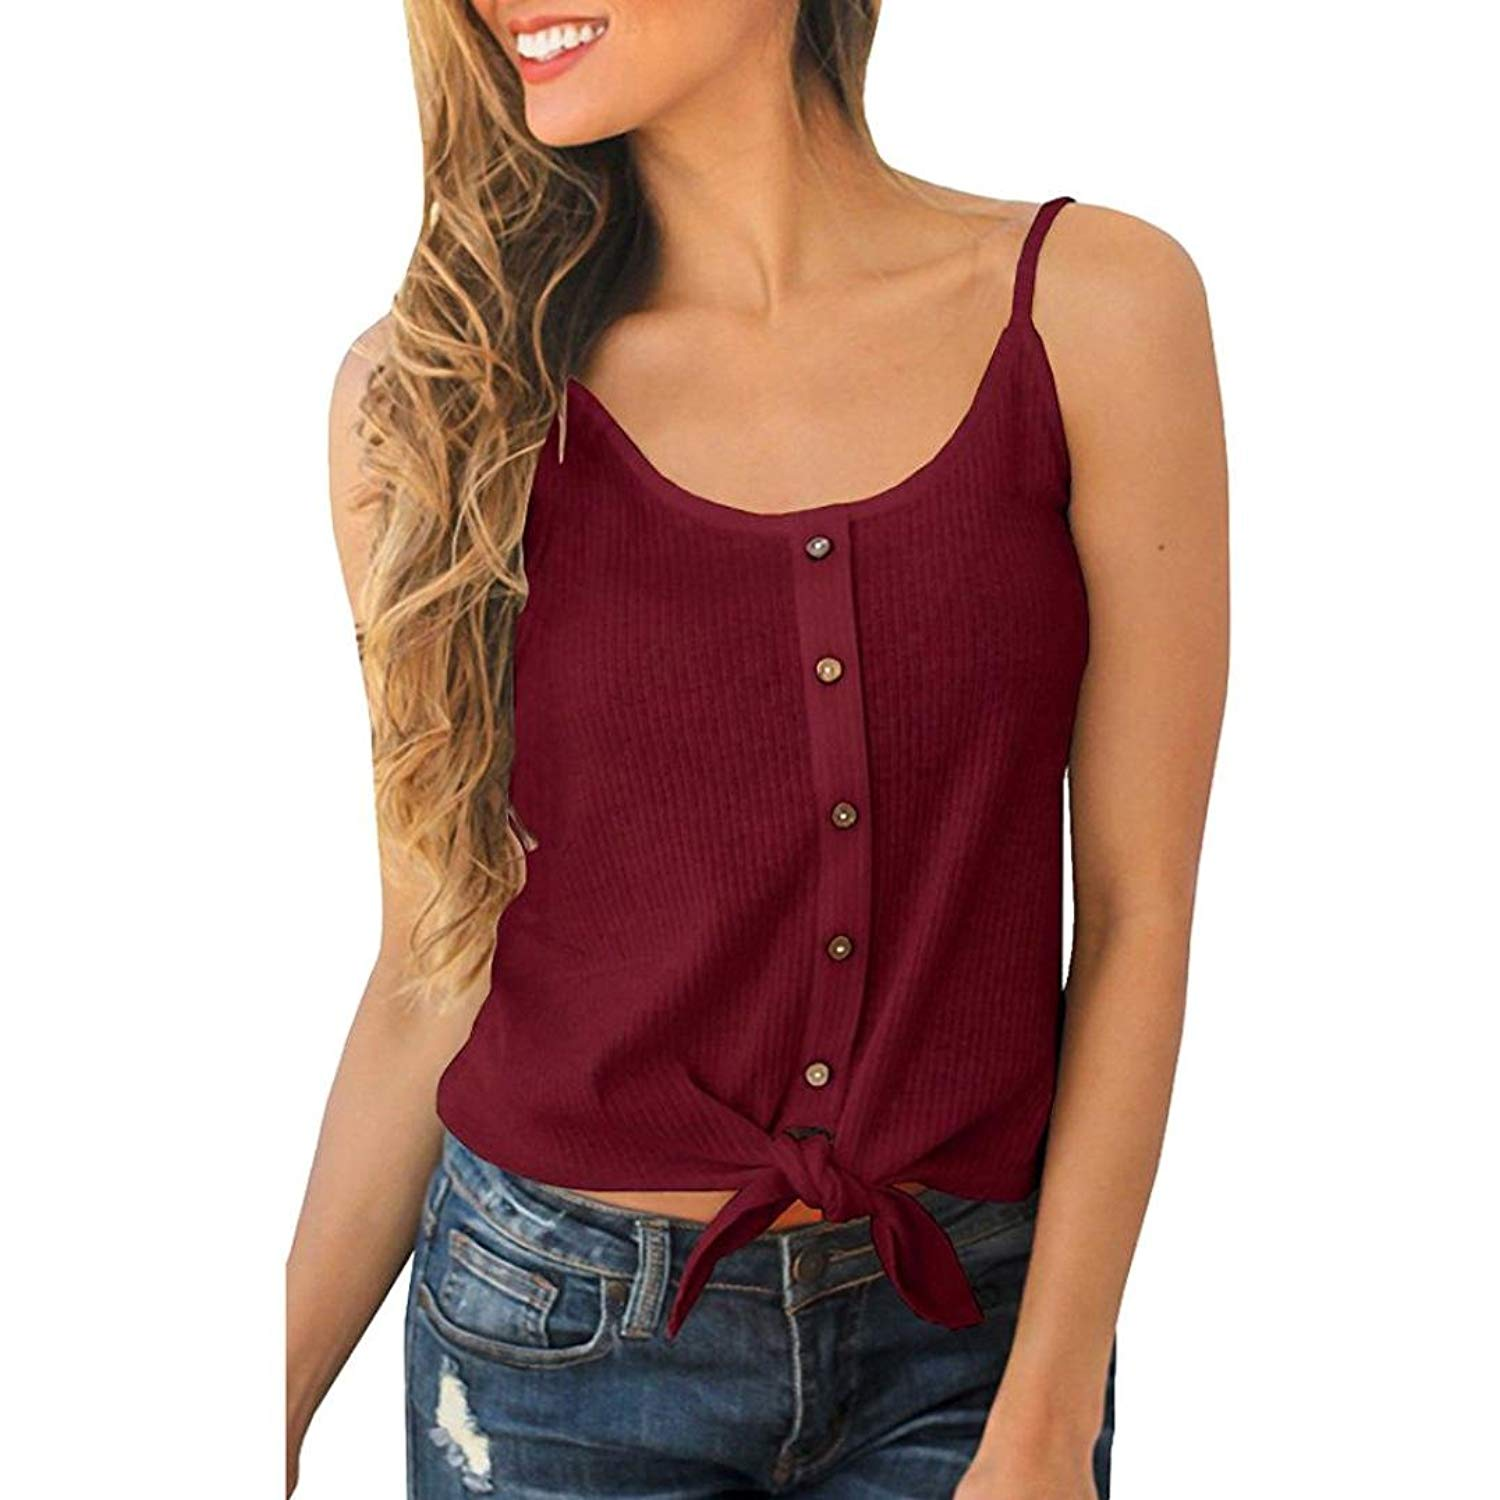 b33f4314a4b24 BCDshop Women Button Sleeveless Solid Cami Top Tank Shirt Casual Bandage  Blouse Vest